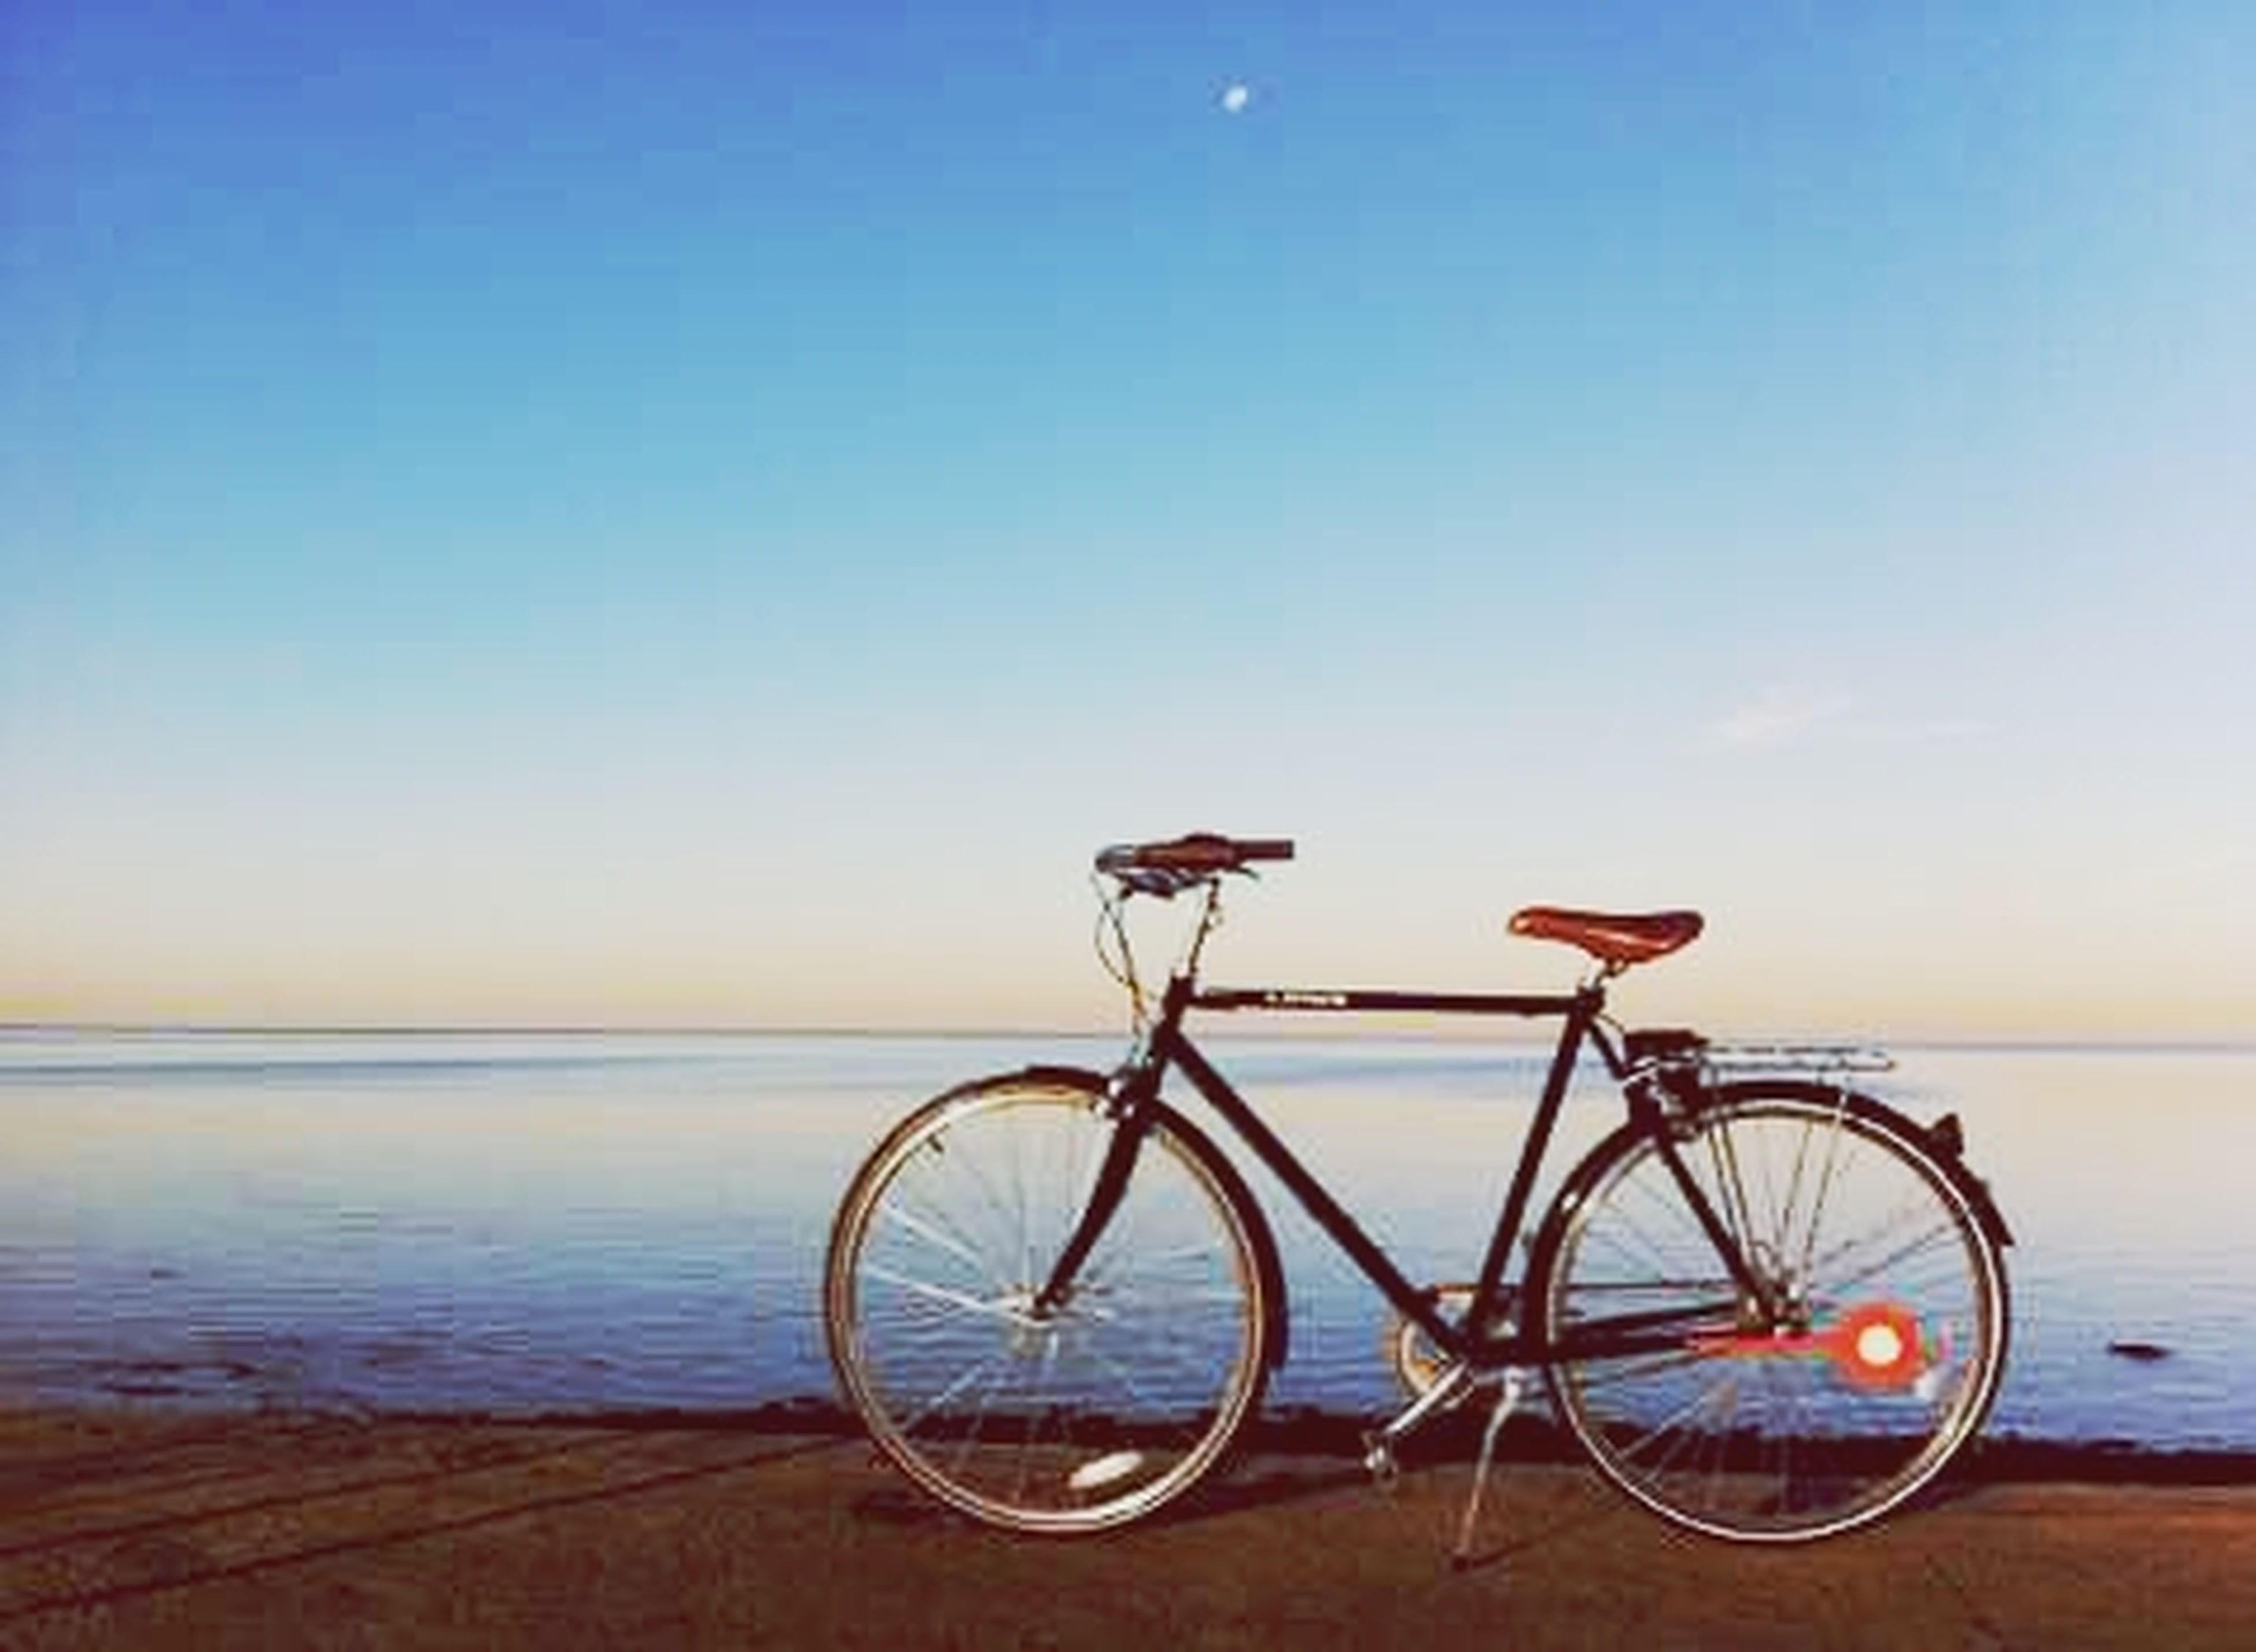 bicycle, transportation, mode of transport, water, sea, stationary, parked, parking, horizon over water, copy space, land vehicle, clear sky, tranquility, blue, beach, tranquil scene, sky, beauty in nature, nature, scenics